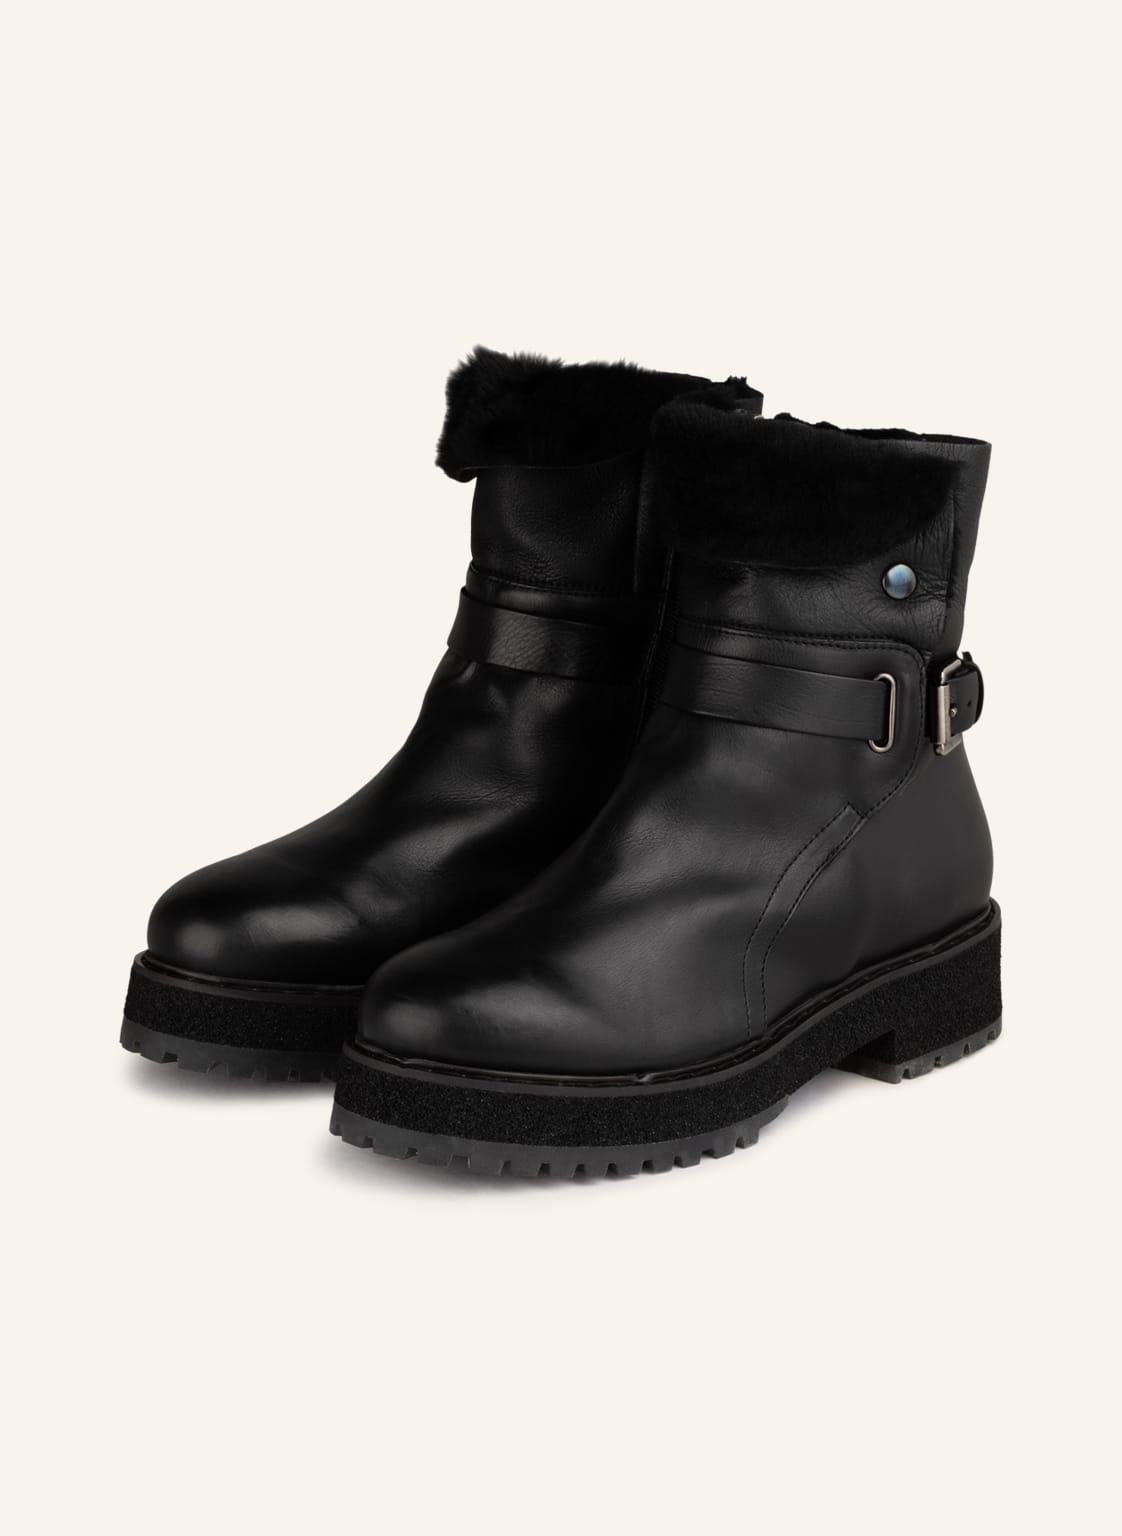 Image of Agl Boots schwarz